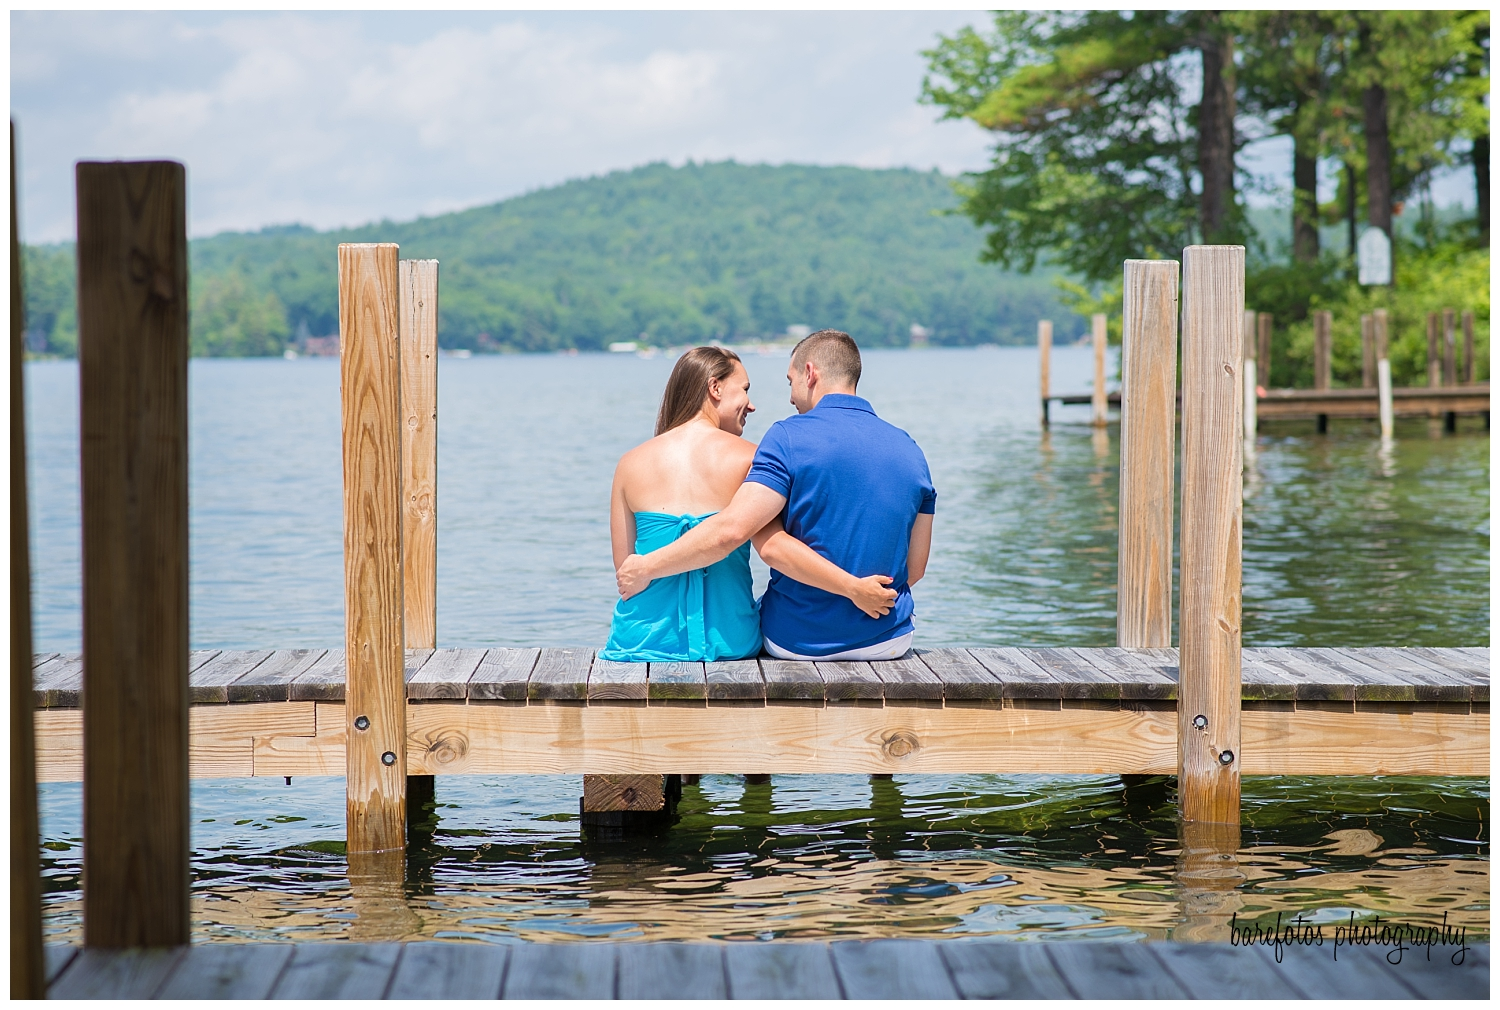 Mary Louise + Greg | Engagement Session | Laconia, NH